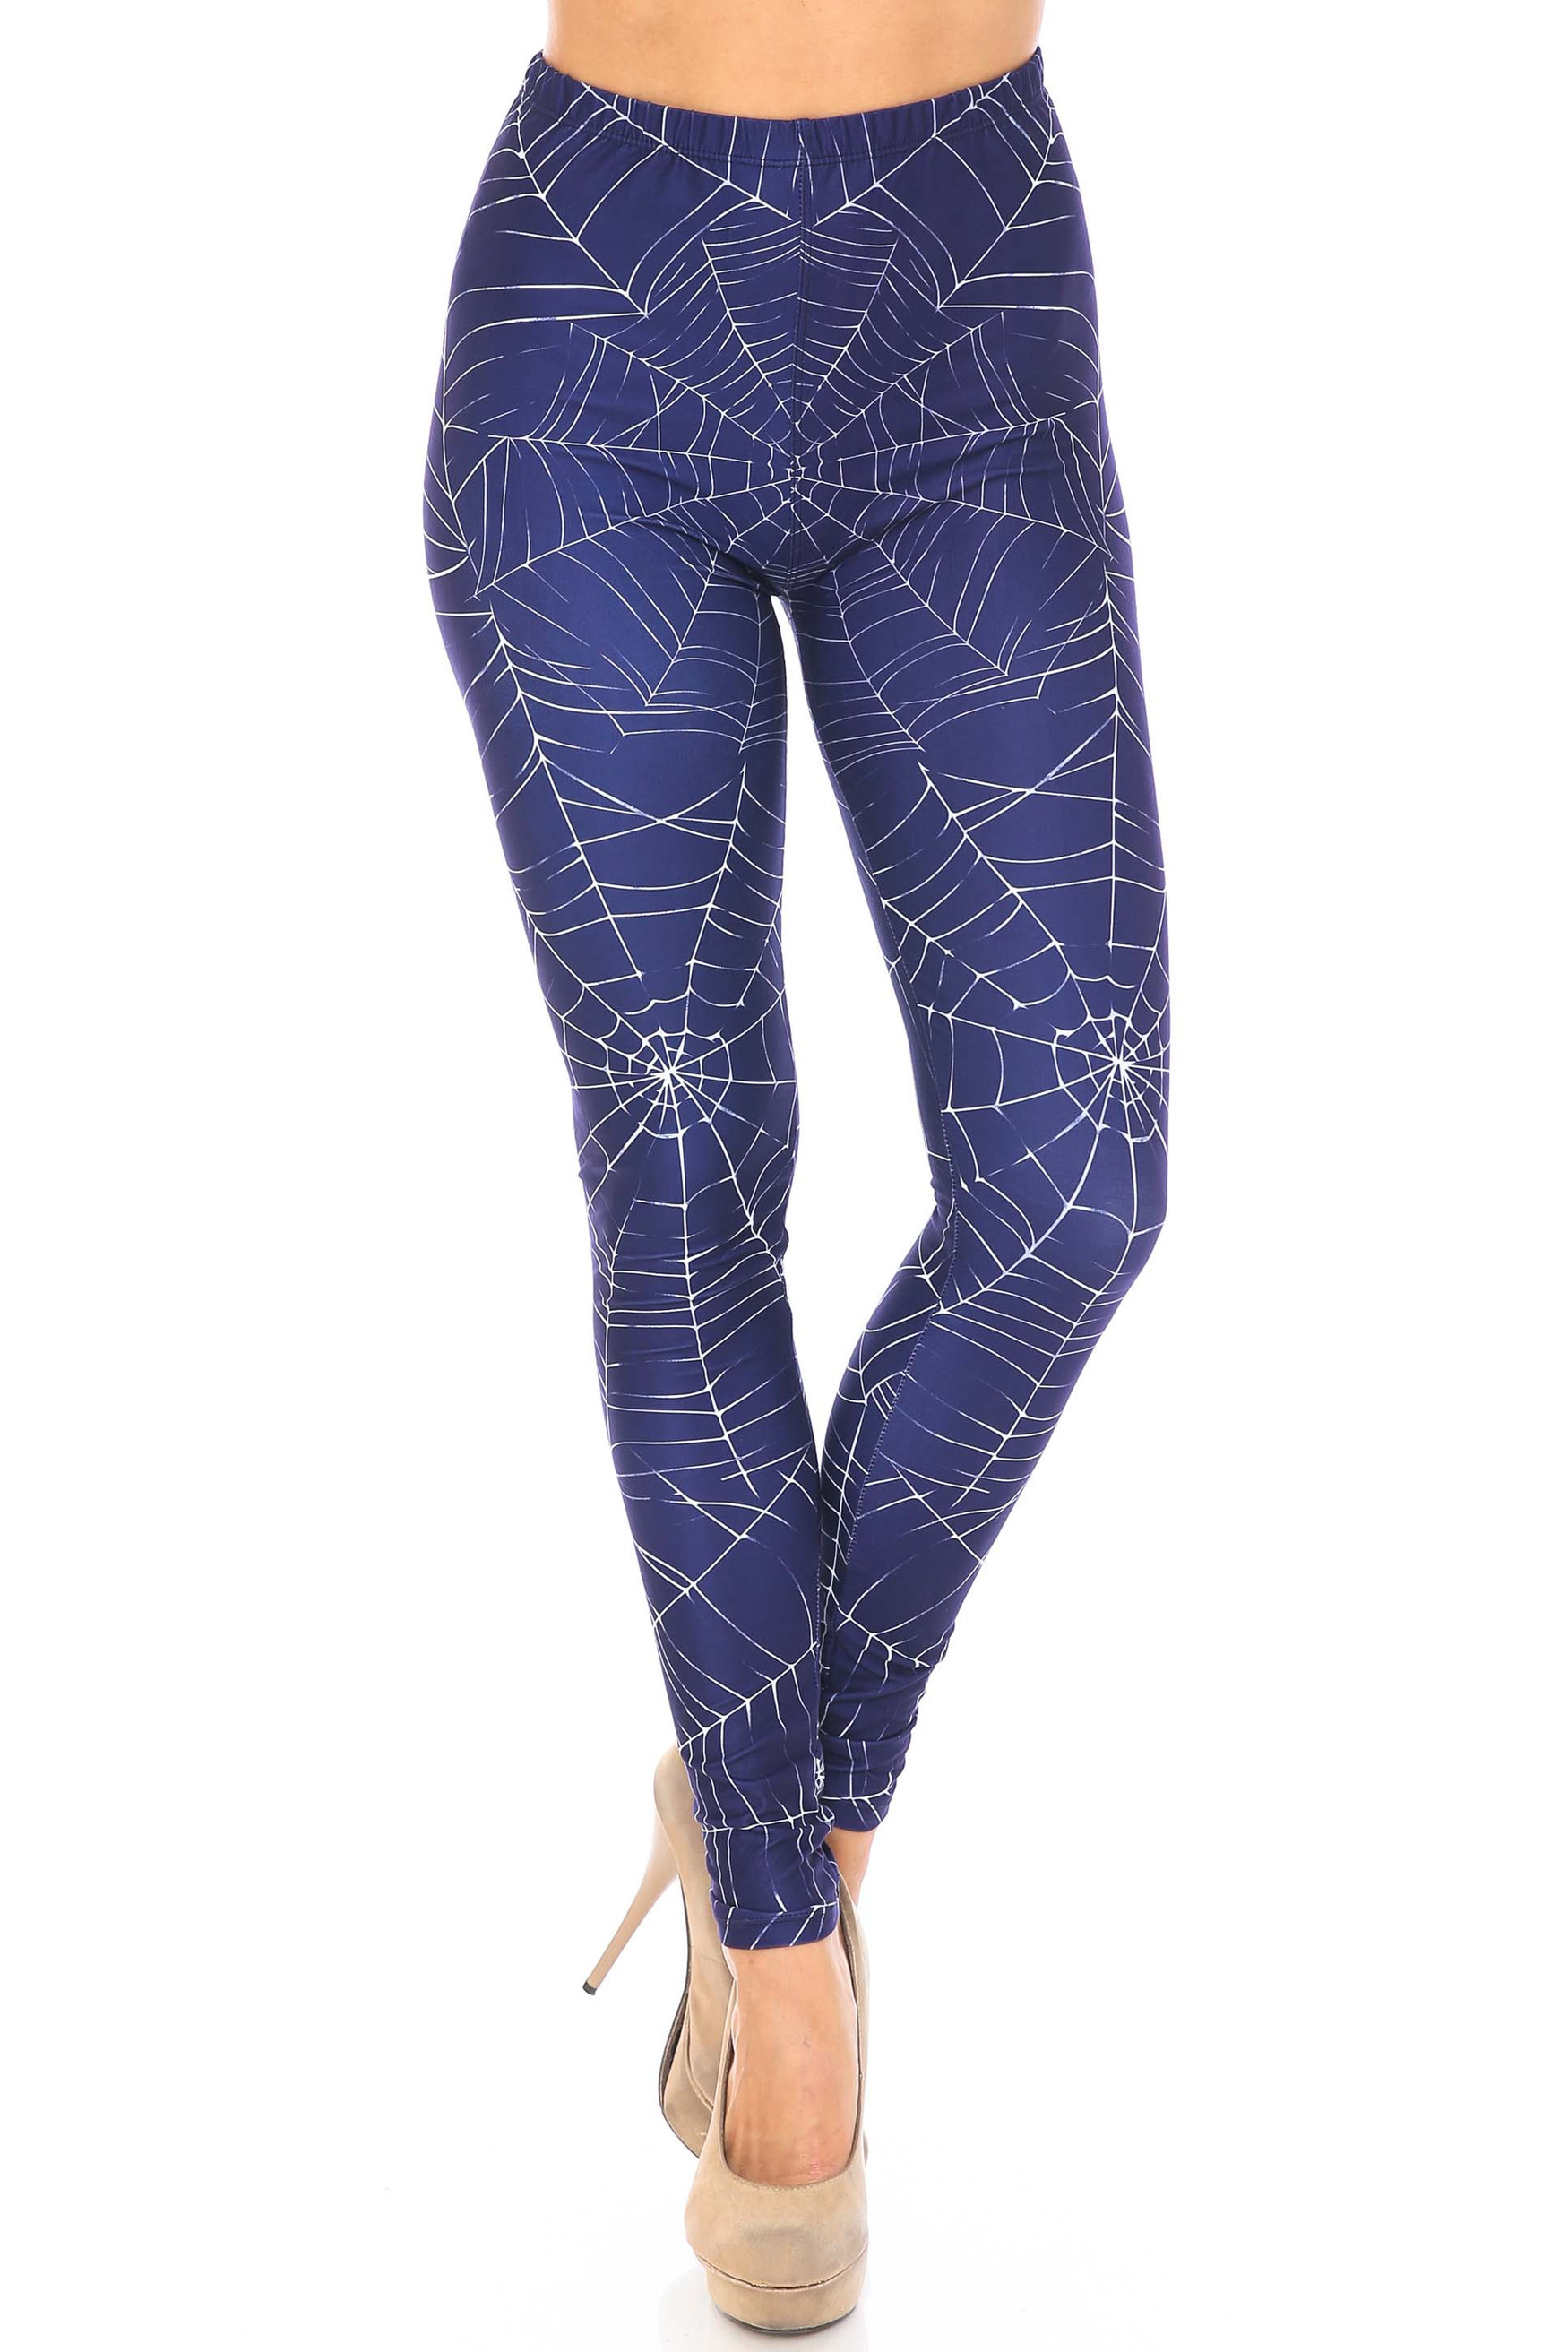 Front Legs Crossed Creamy Soft Spiderwebs Halloween Extra Plus Size Leggings - 3X-5X - By USA Fashion™